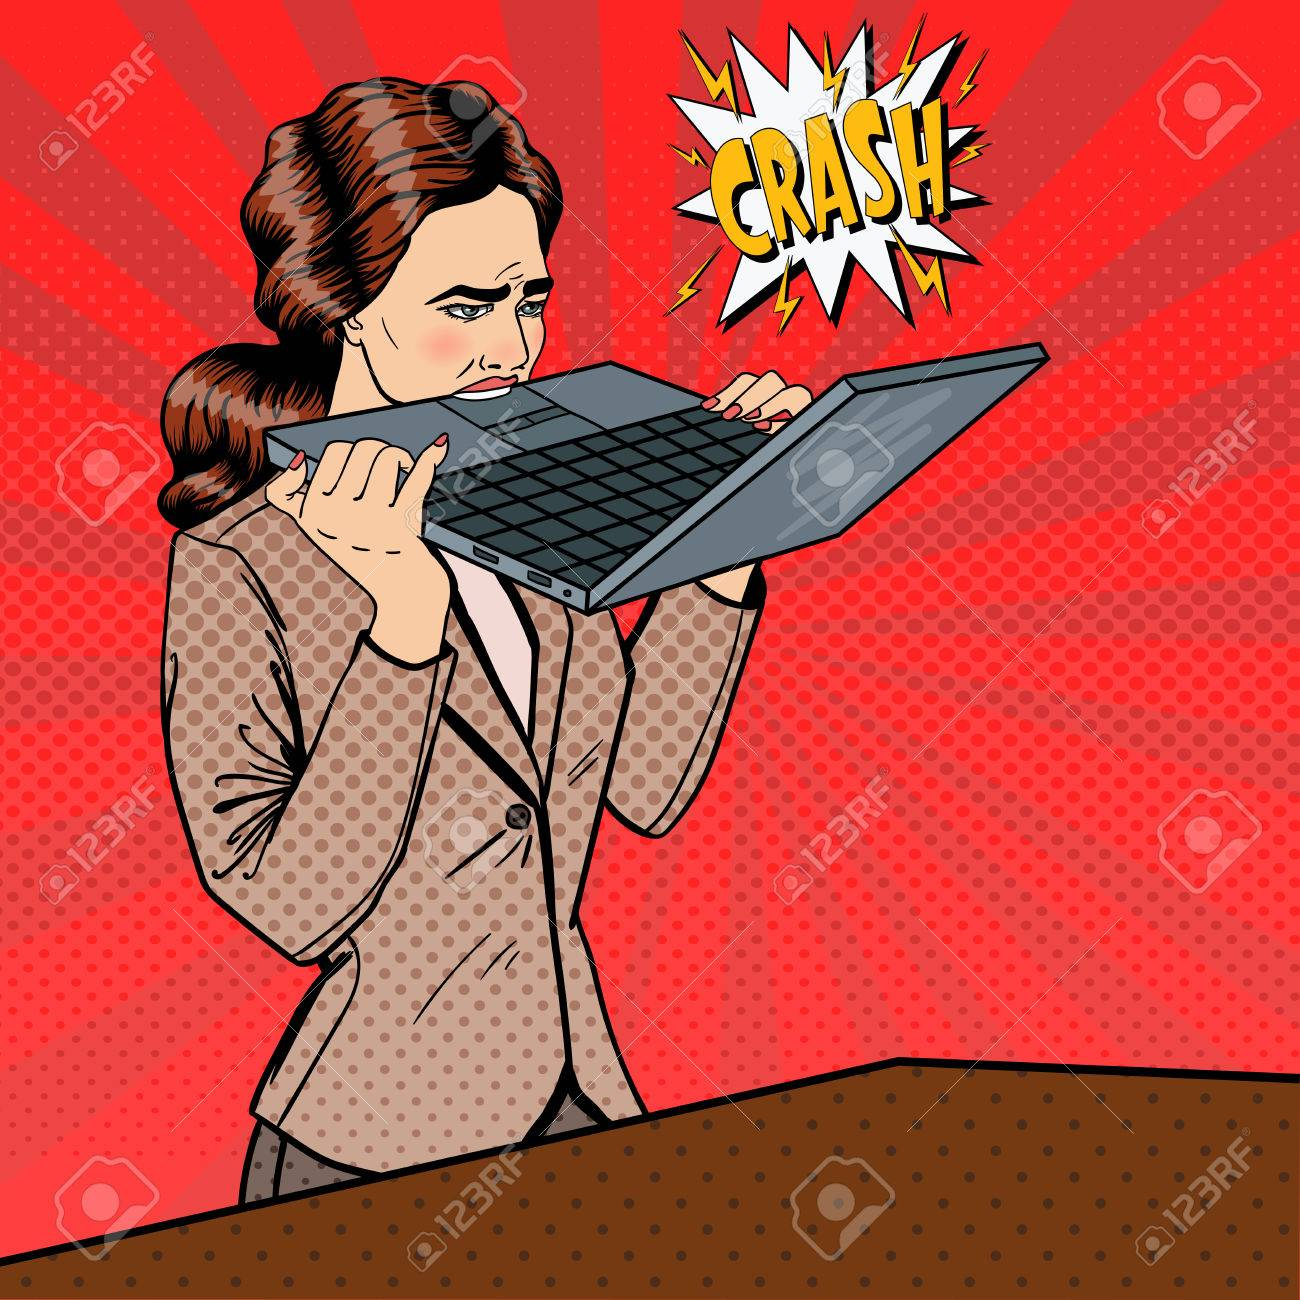 Frustrated Stressed Business Woman Biting Laptop in Office. Pop Art. Vector illustration - 59661789